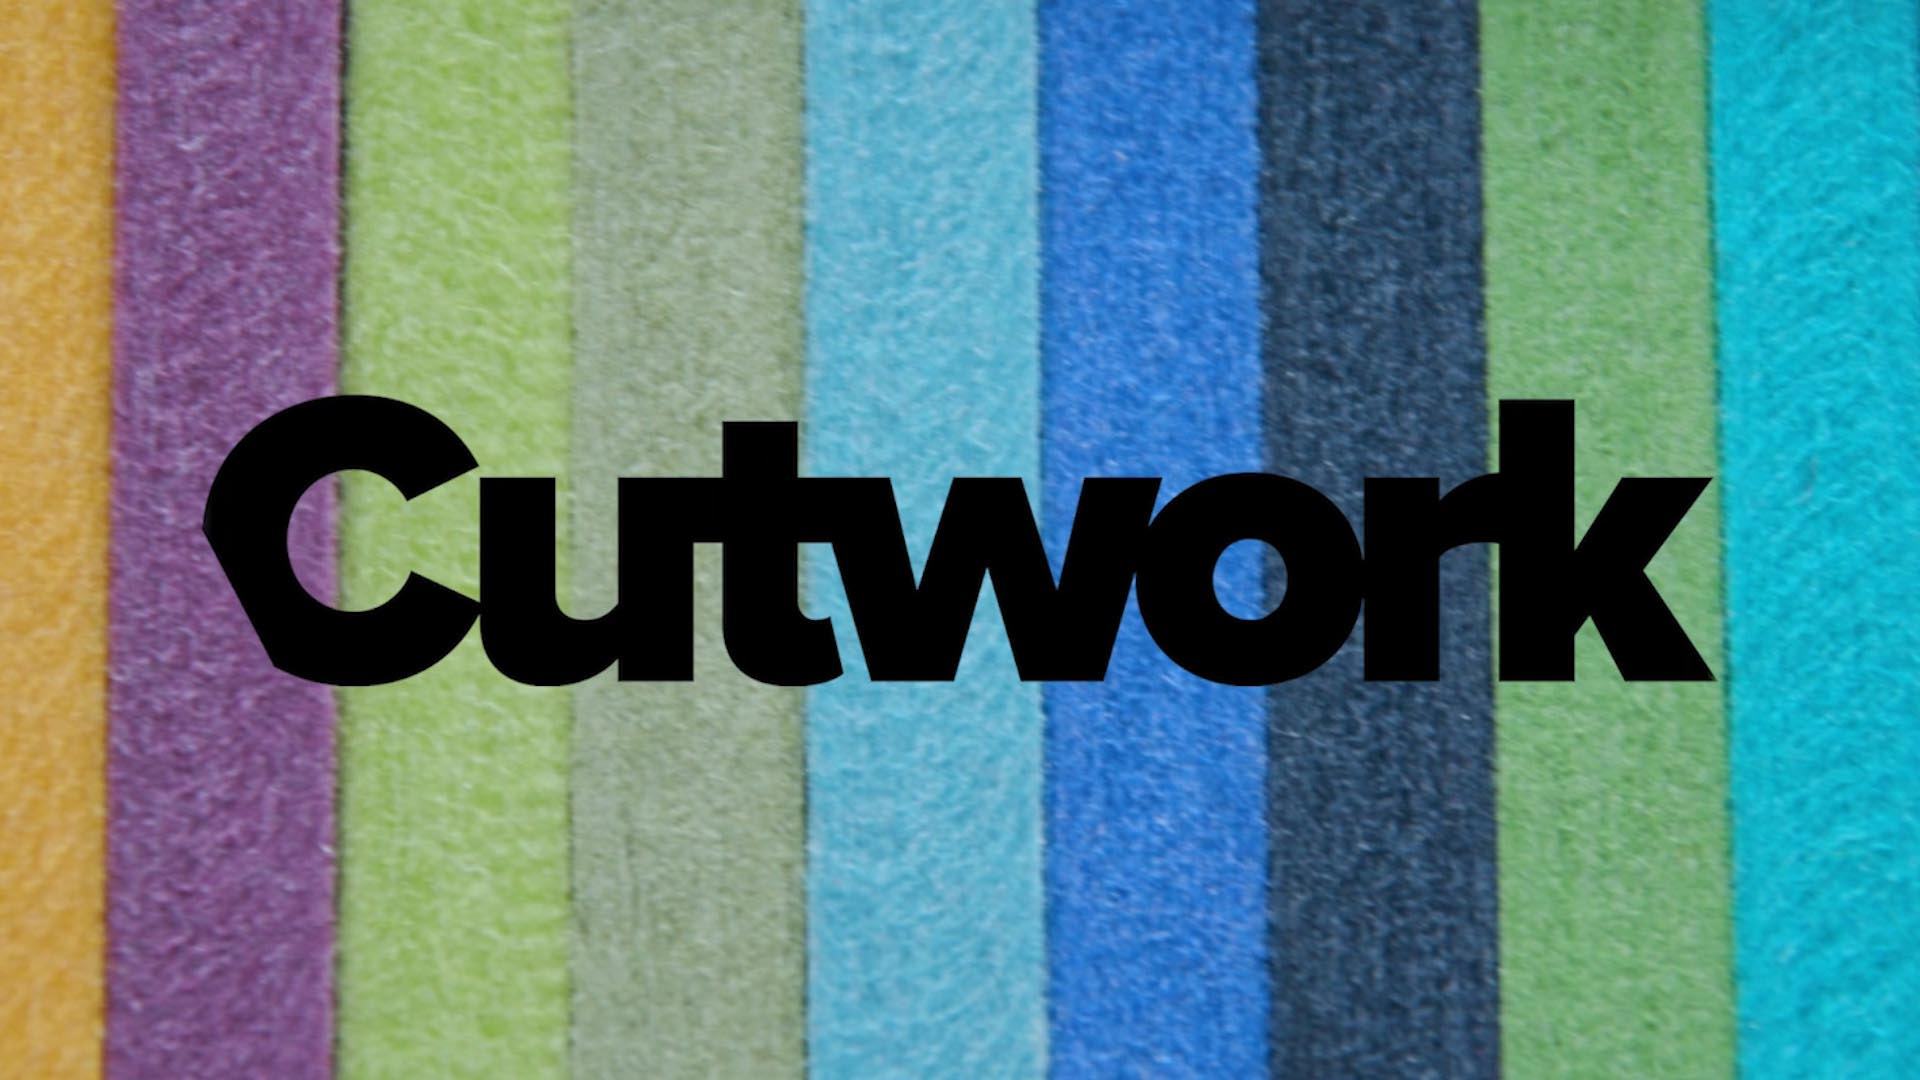 Cutwork - Architect & Design